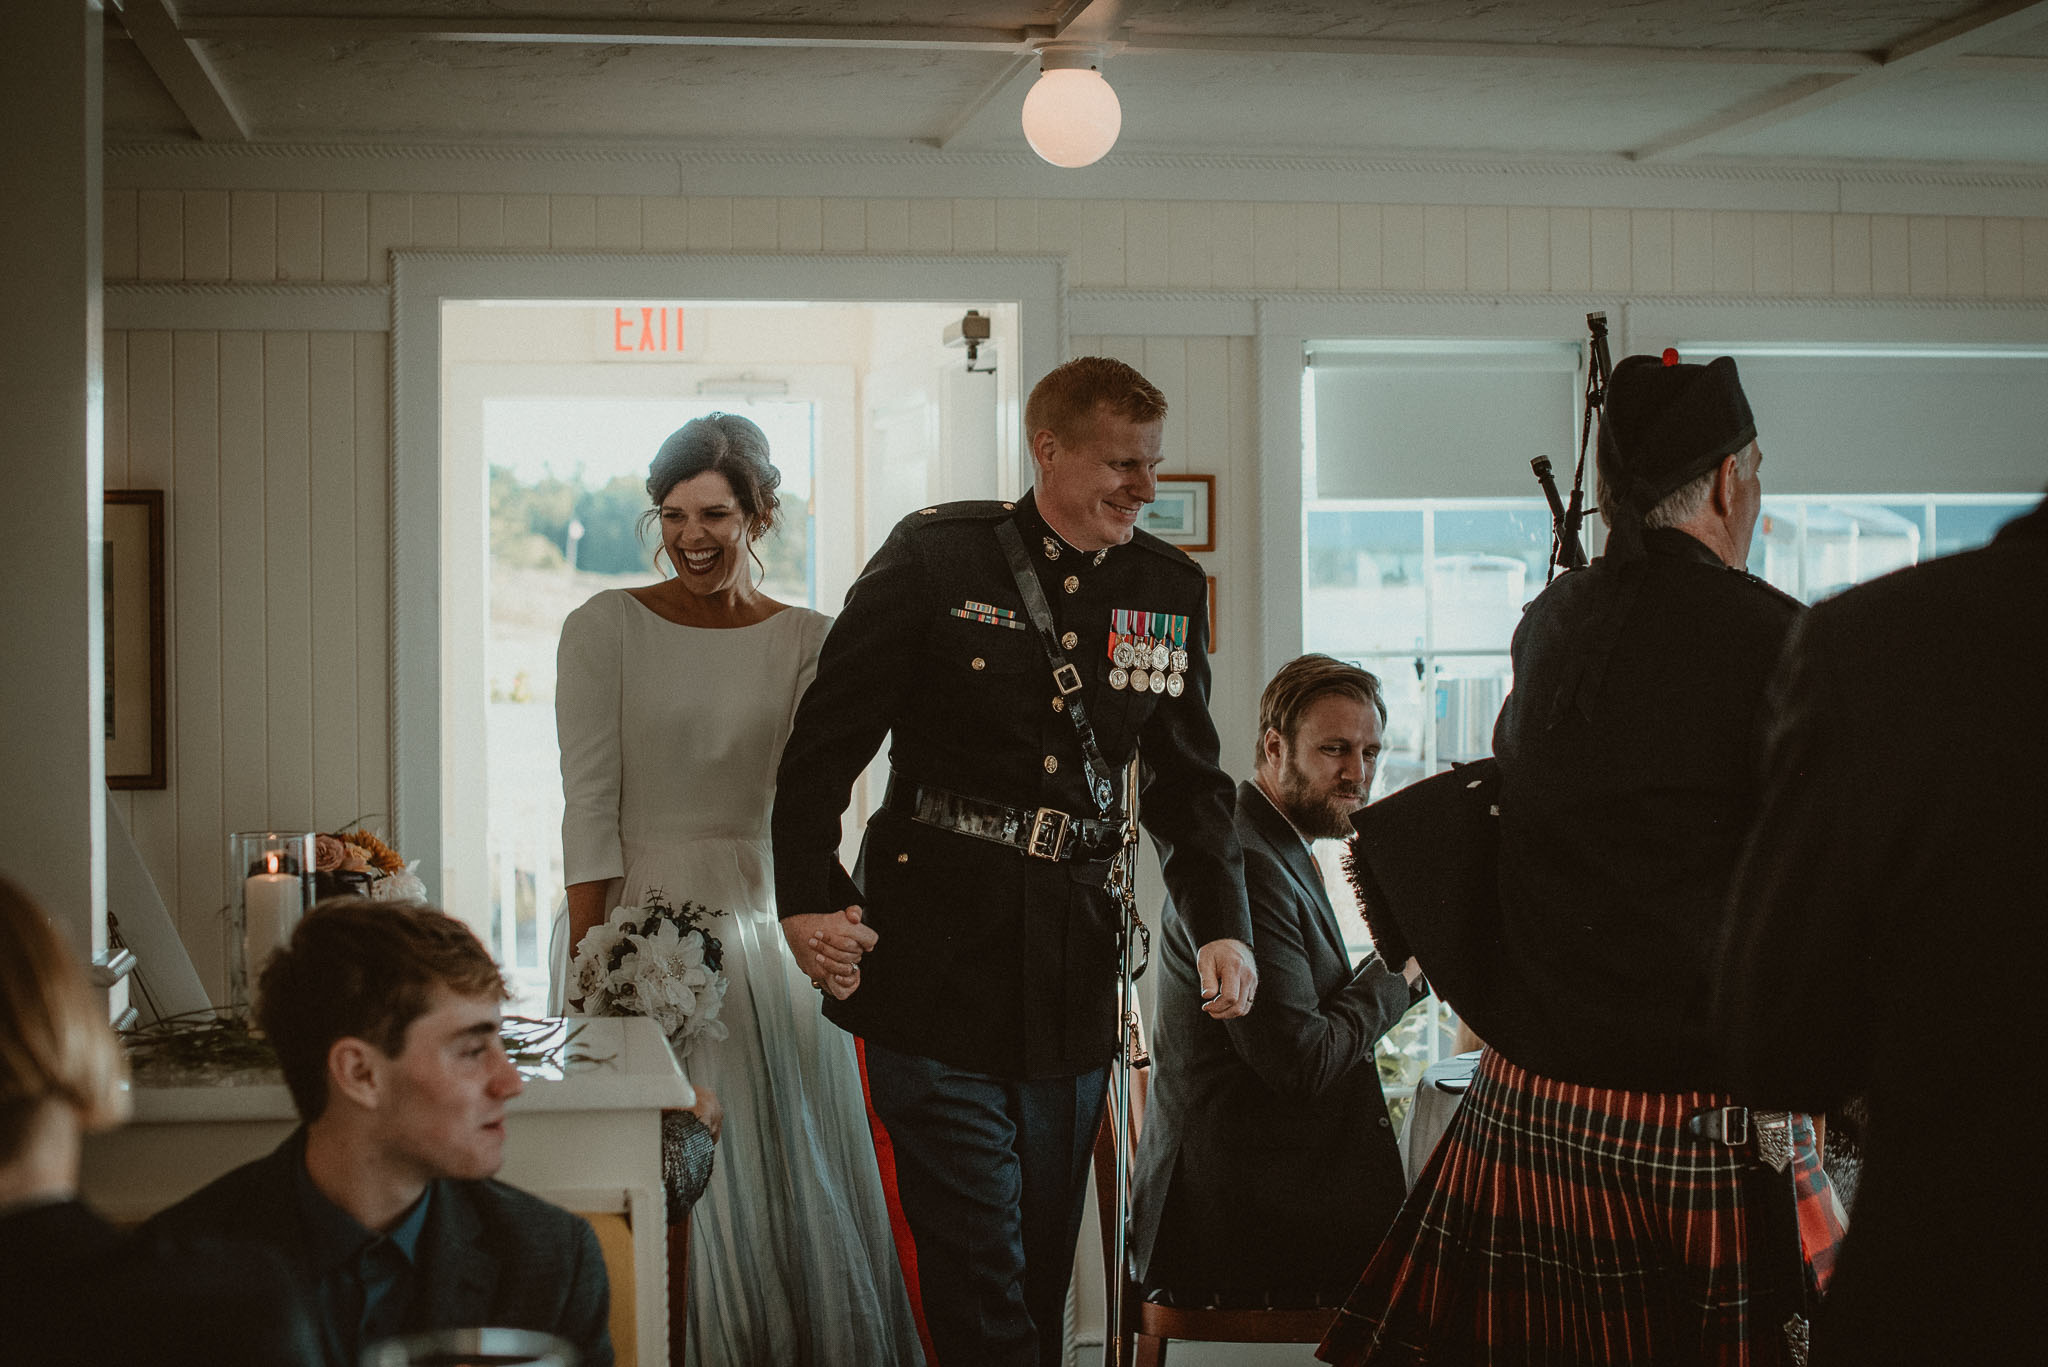 The bride and groom making their grand entrance into Cafe Manitou.